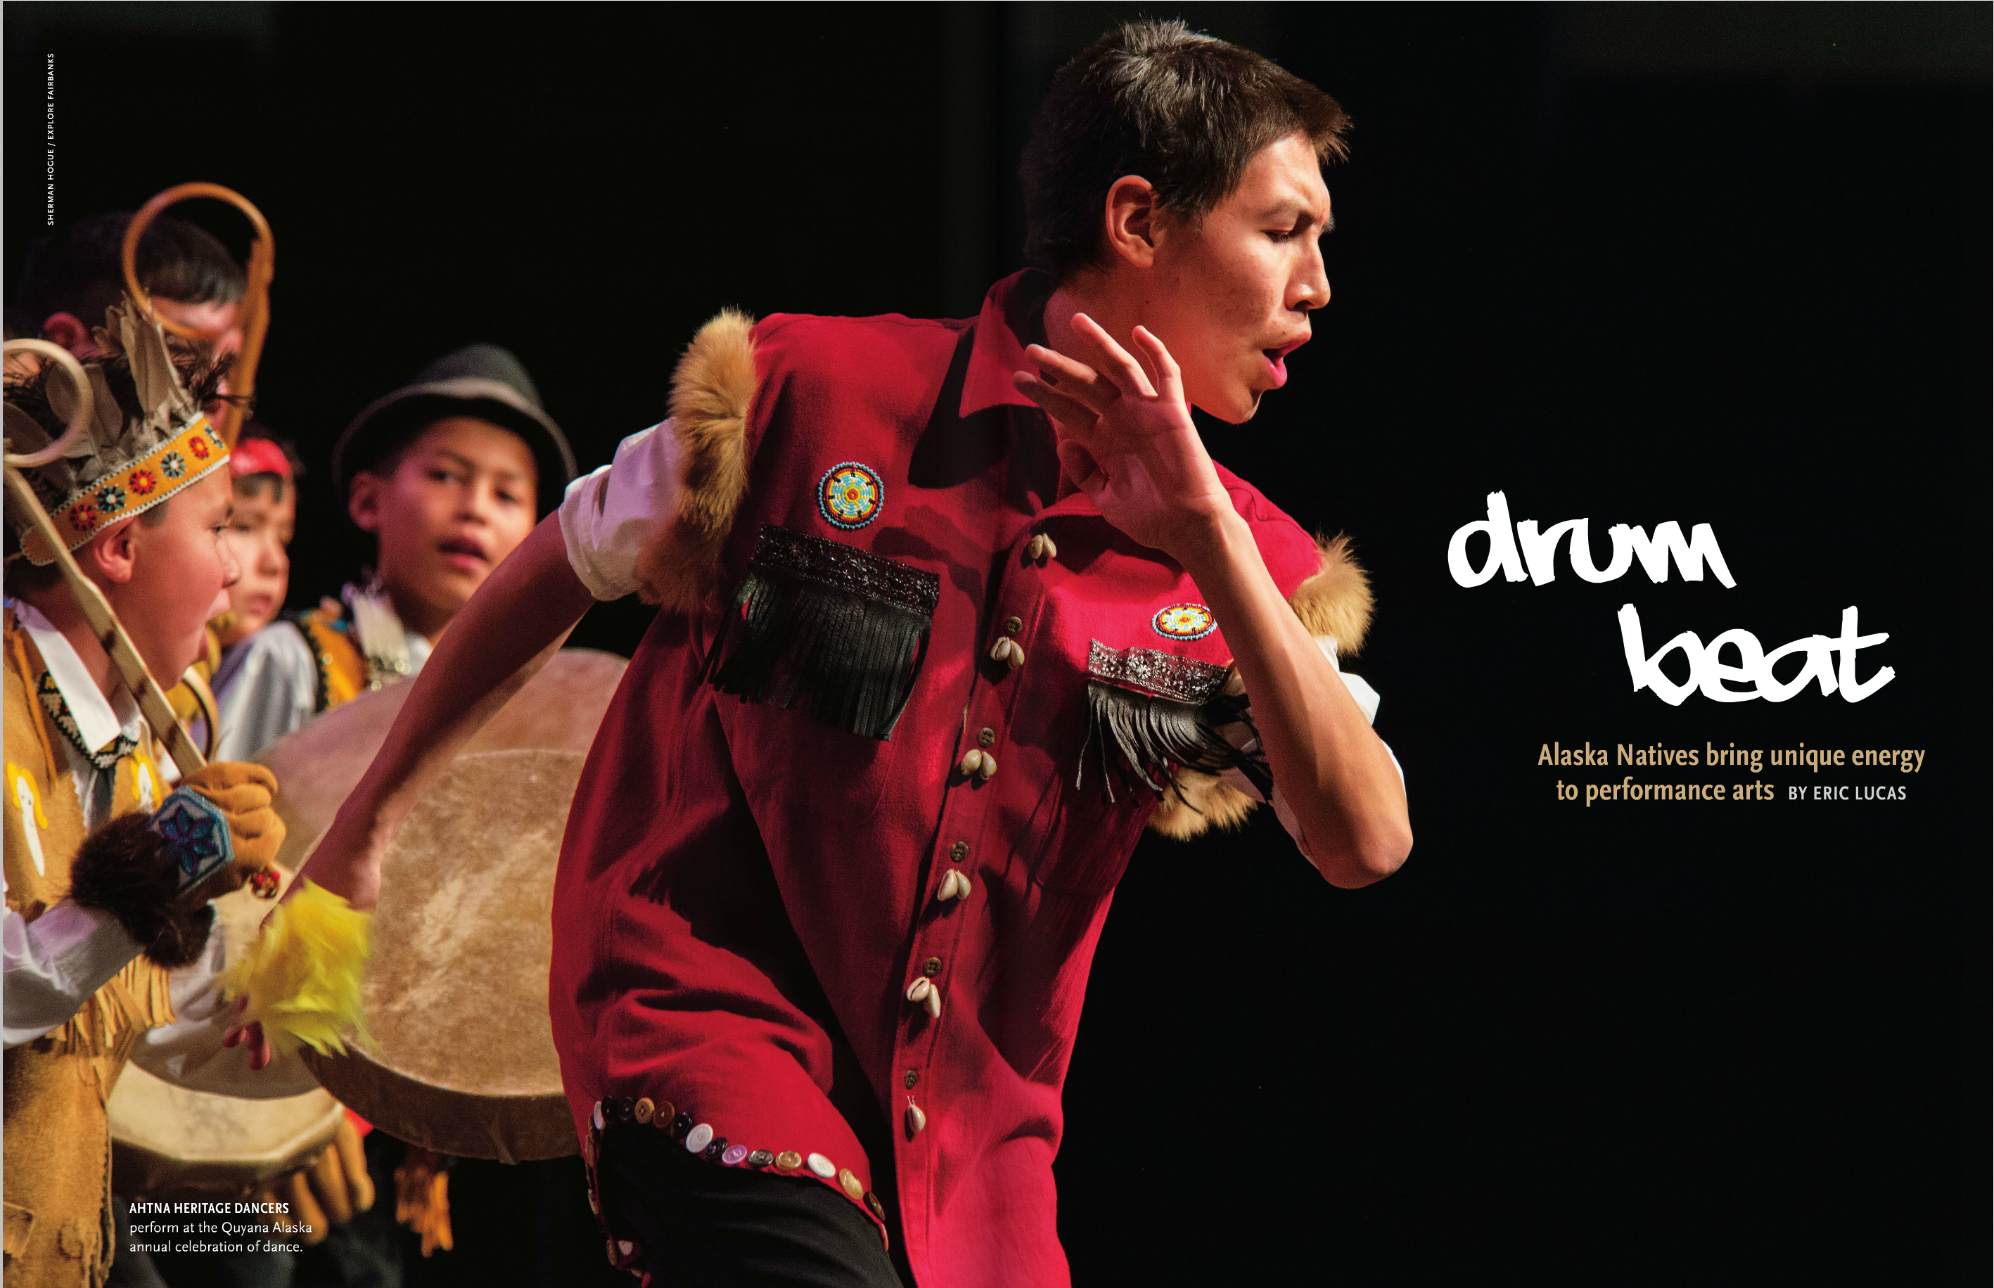 Alaska Airlines Magazine used 5 of my photos in a story on Alaska Native performing arts, starting on page 36.